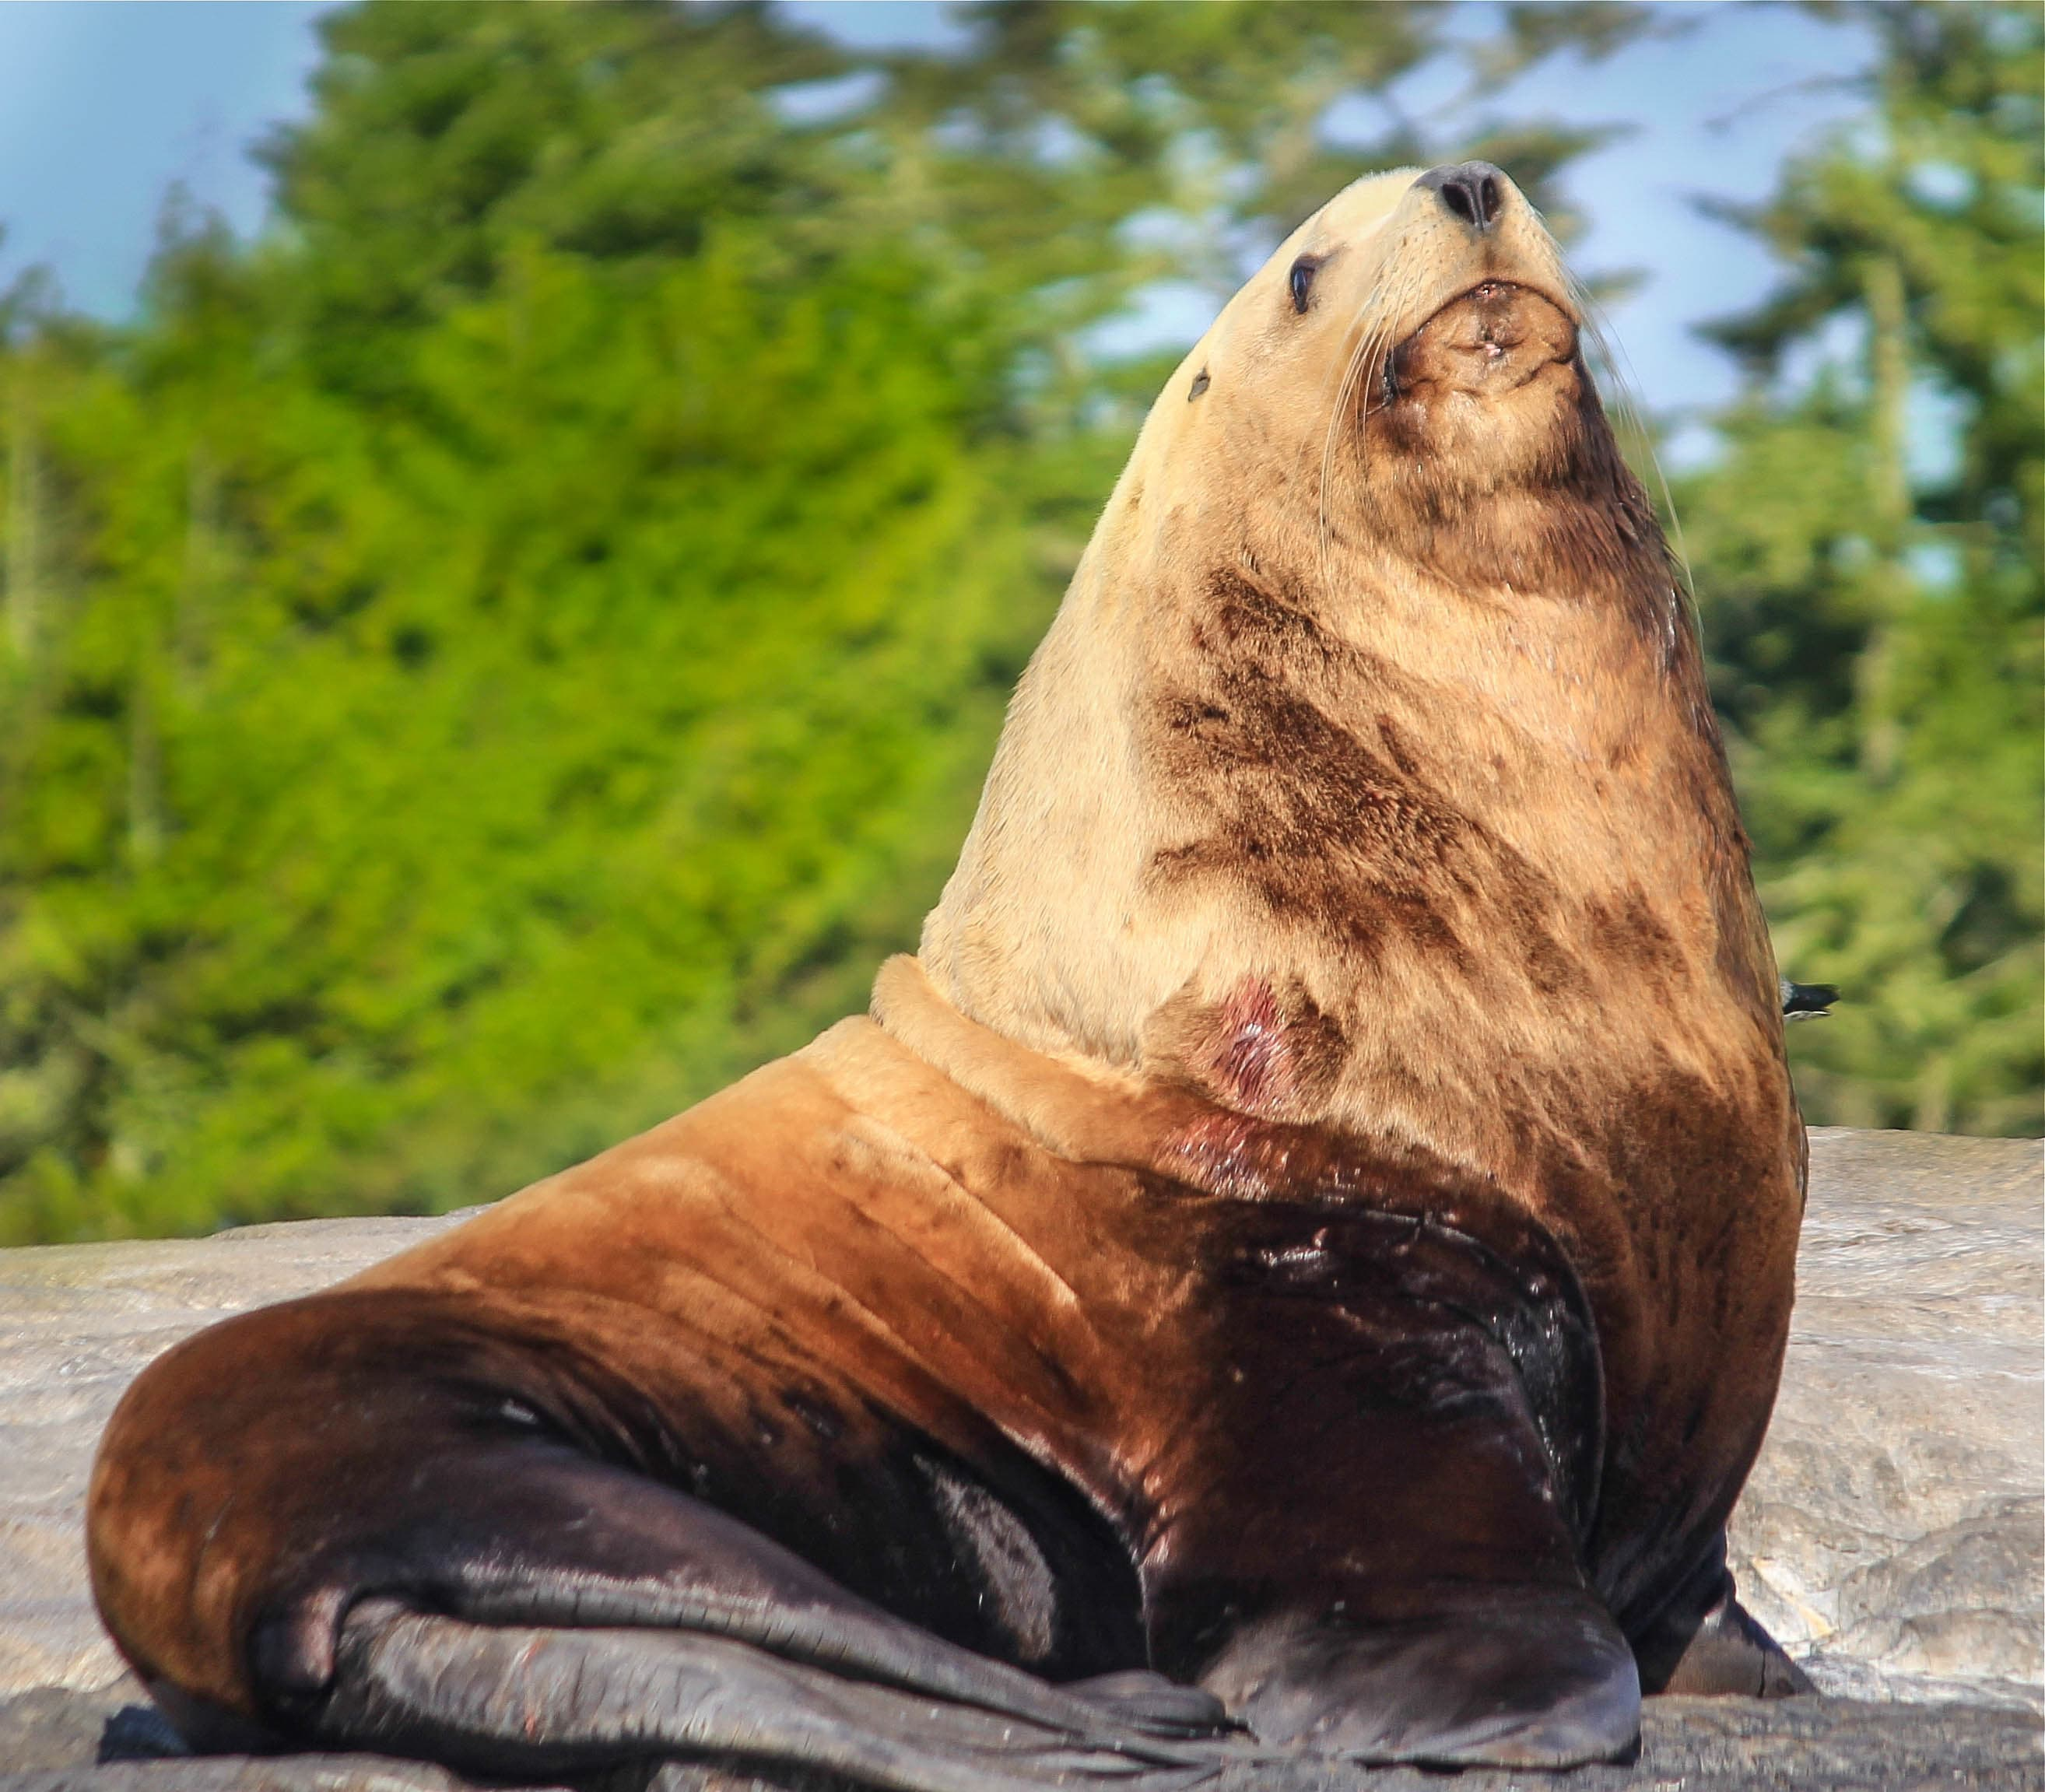 stellar sea lion with trees in the background